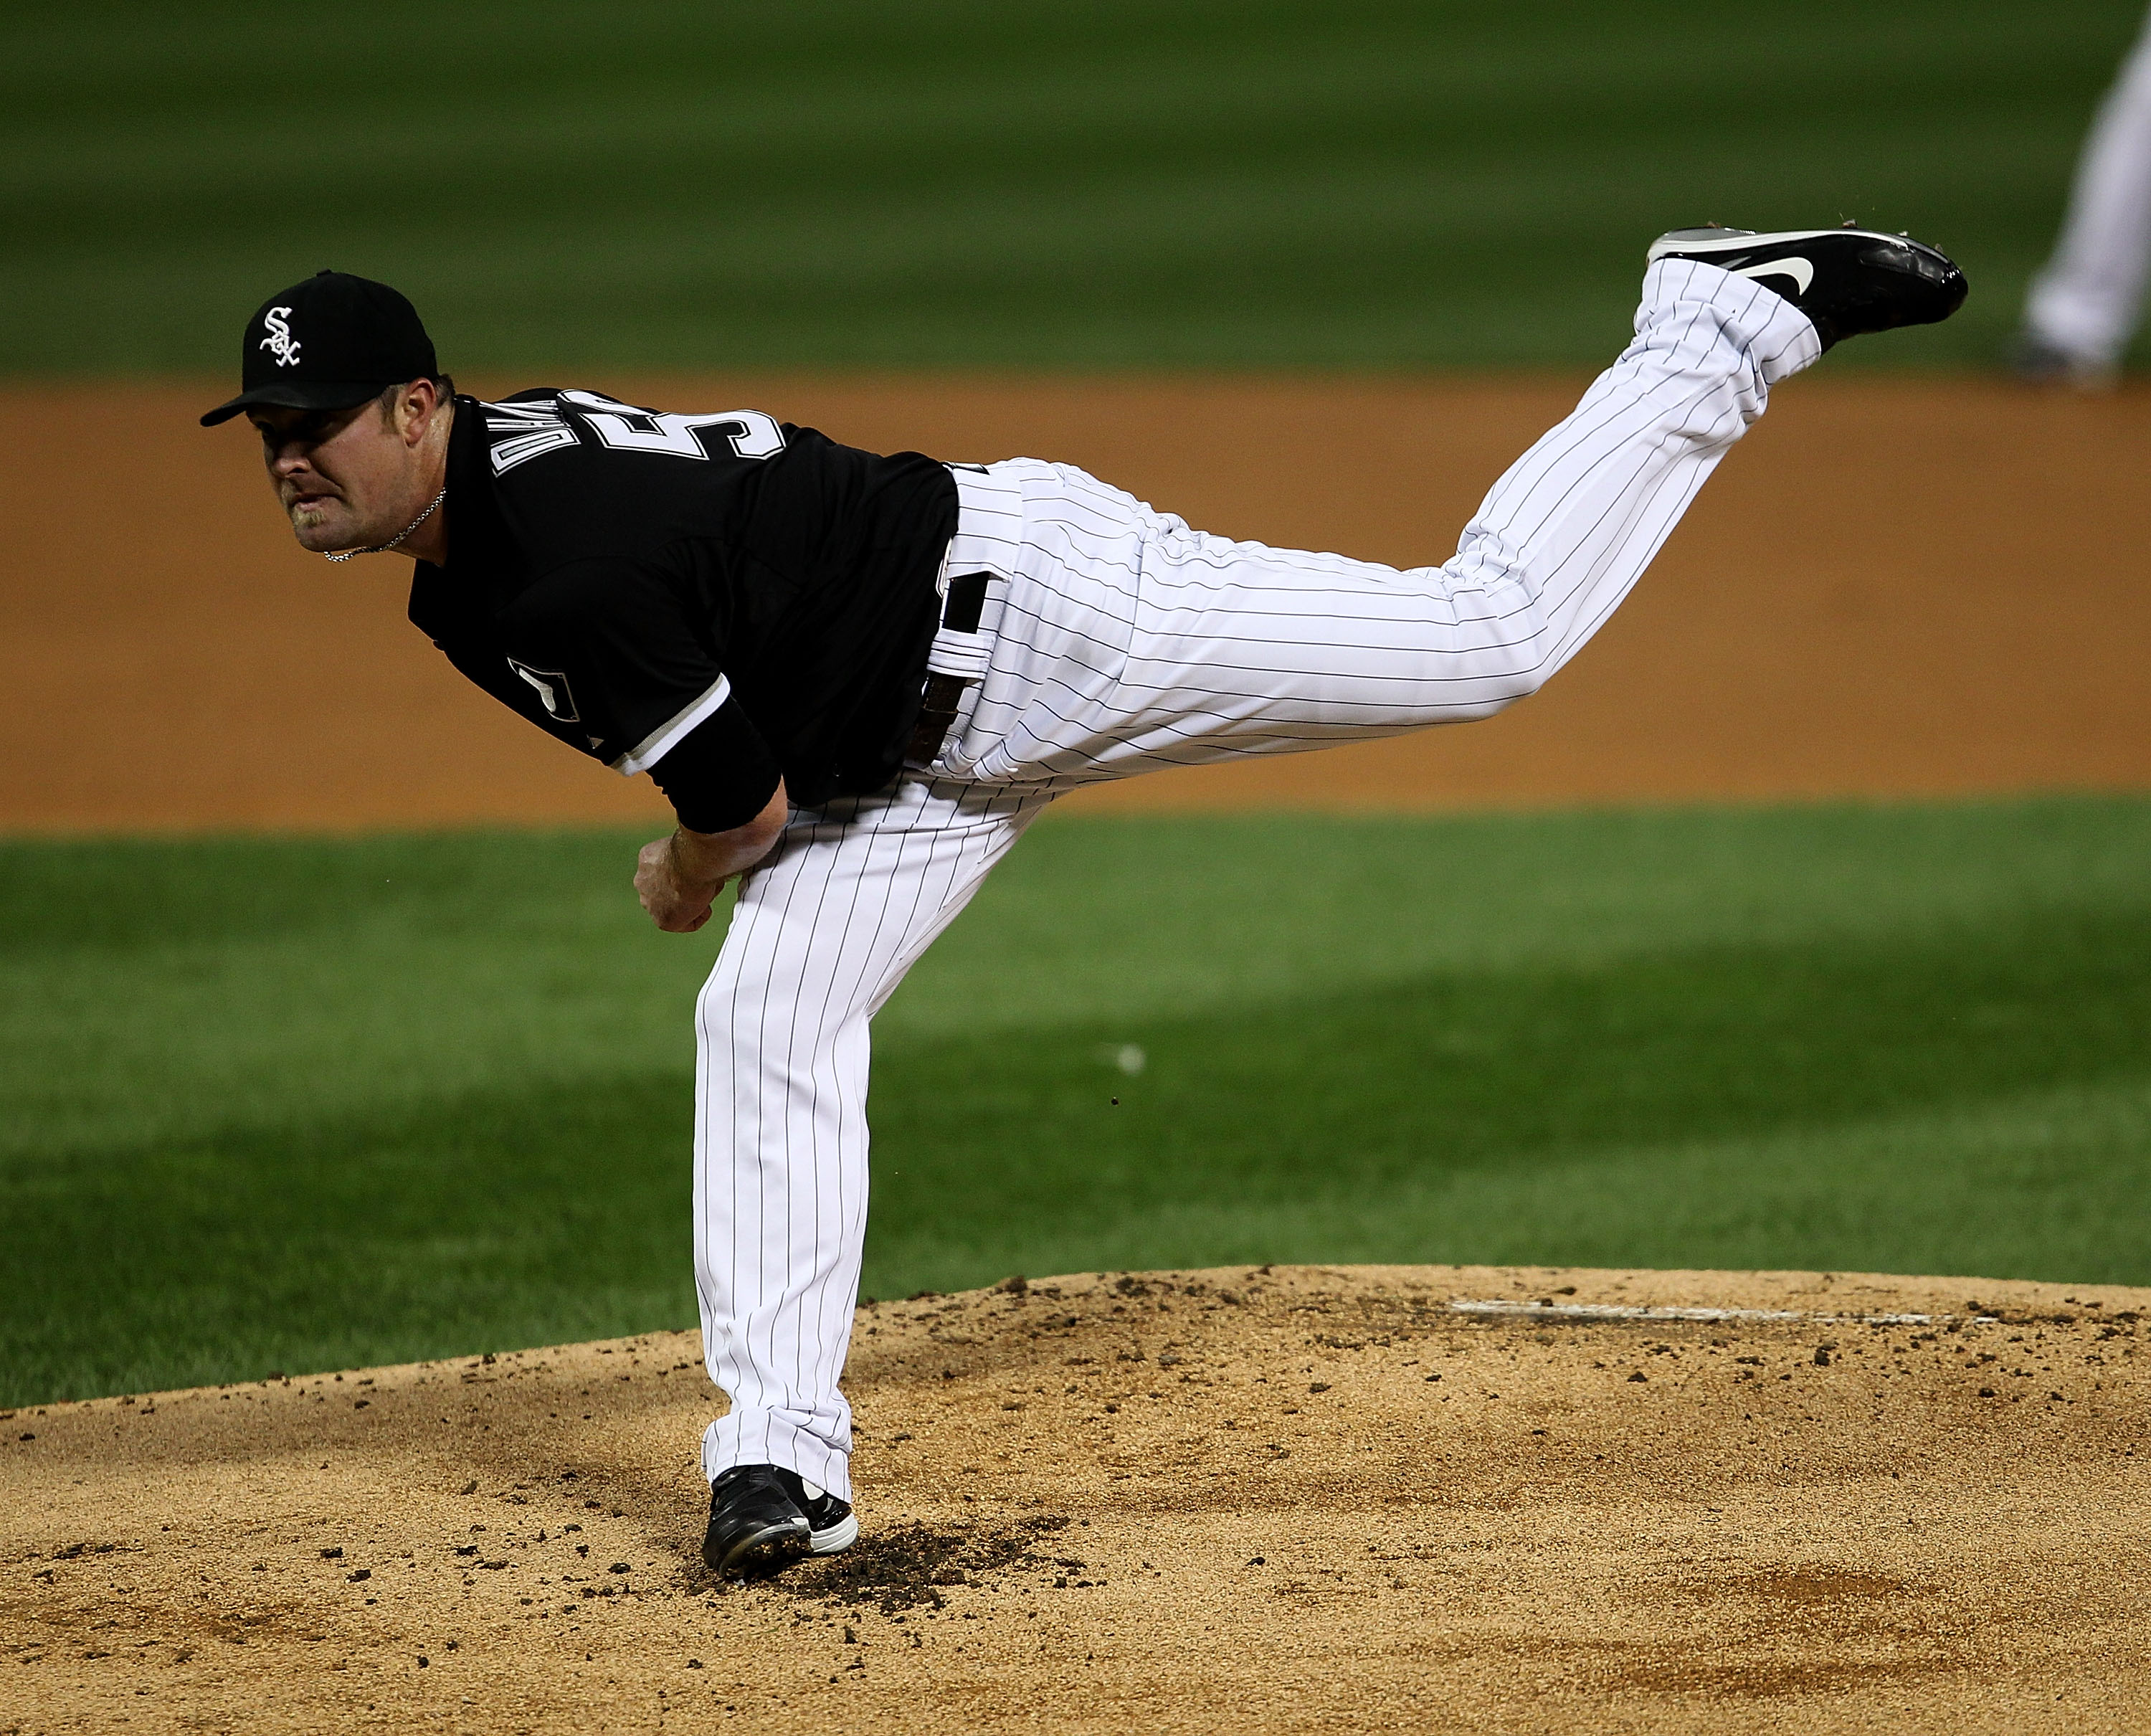 CHICAGO - SEPTEMBER 14: Starting pitcher John Danks #50 of the Chicago White Sox follows through after delivering the ball against of the Minnesota Twins at U.S. Cellular Field on September 14, 2010 in Chicago, Illinois. (Photo by Jonathan Daniel/Getty Im